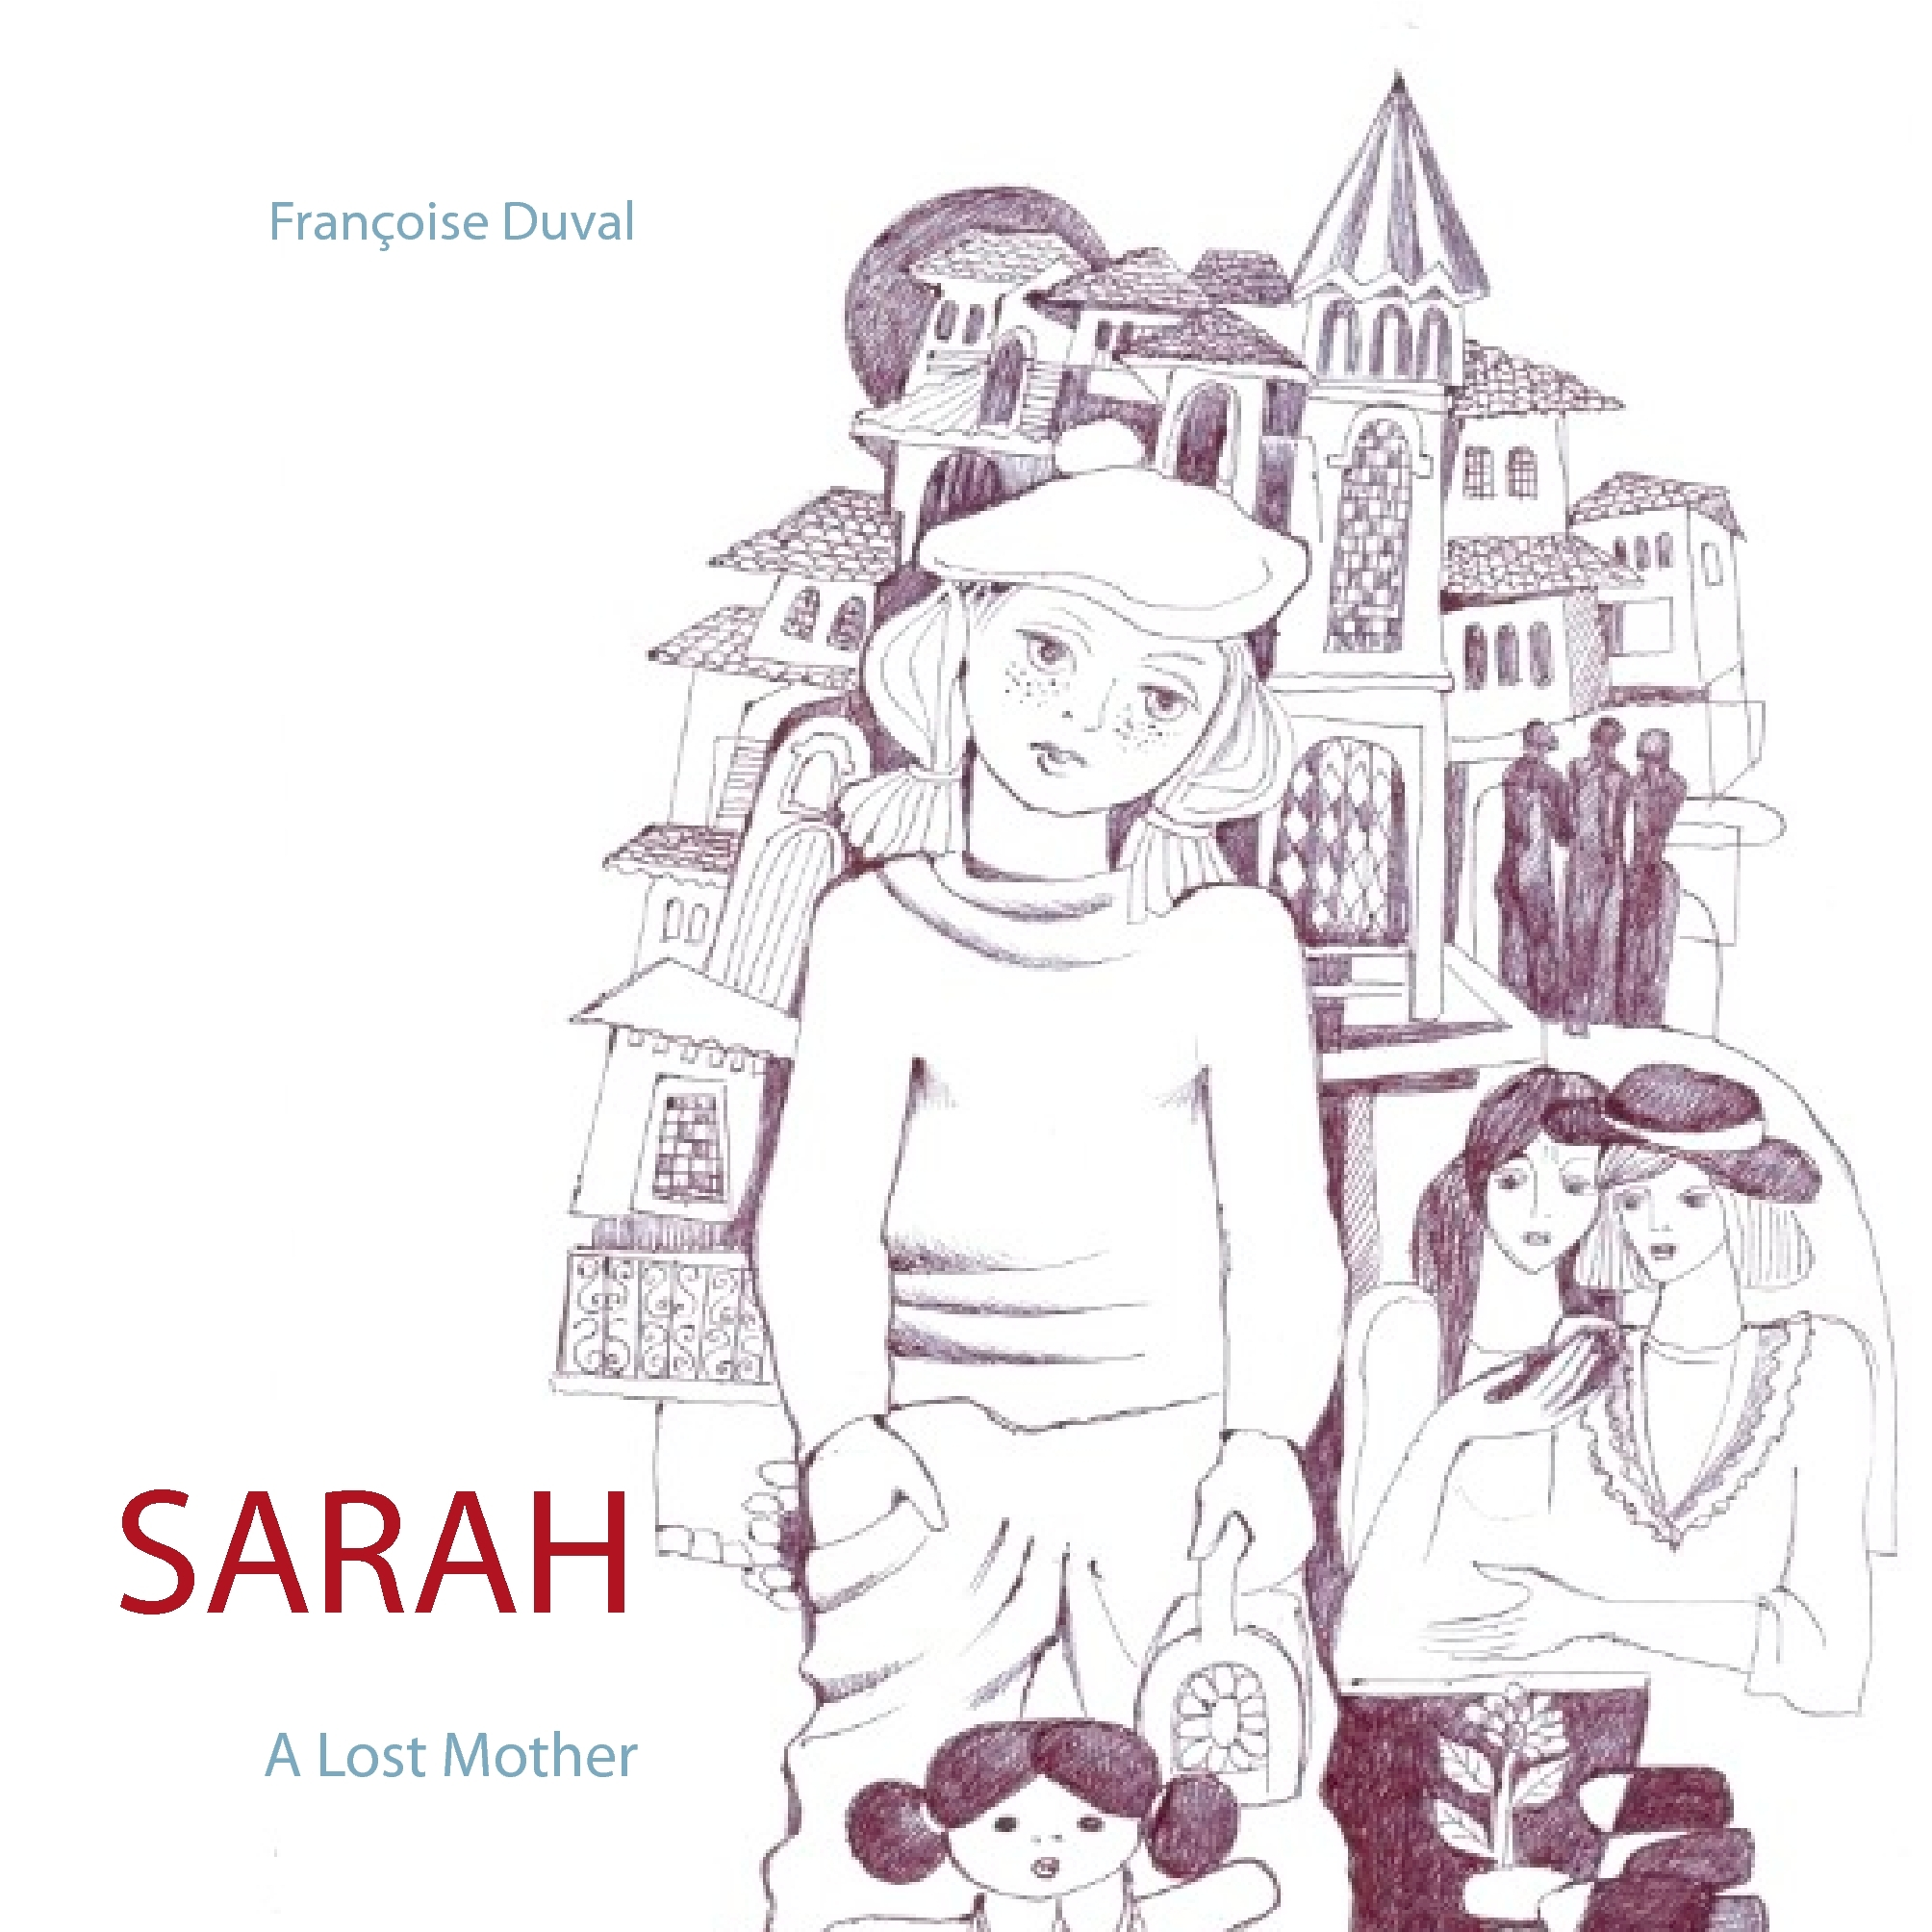 SARAH - A LOST MOTHER